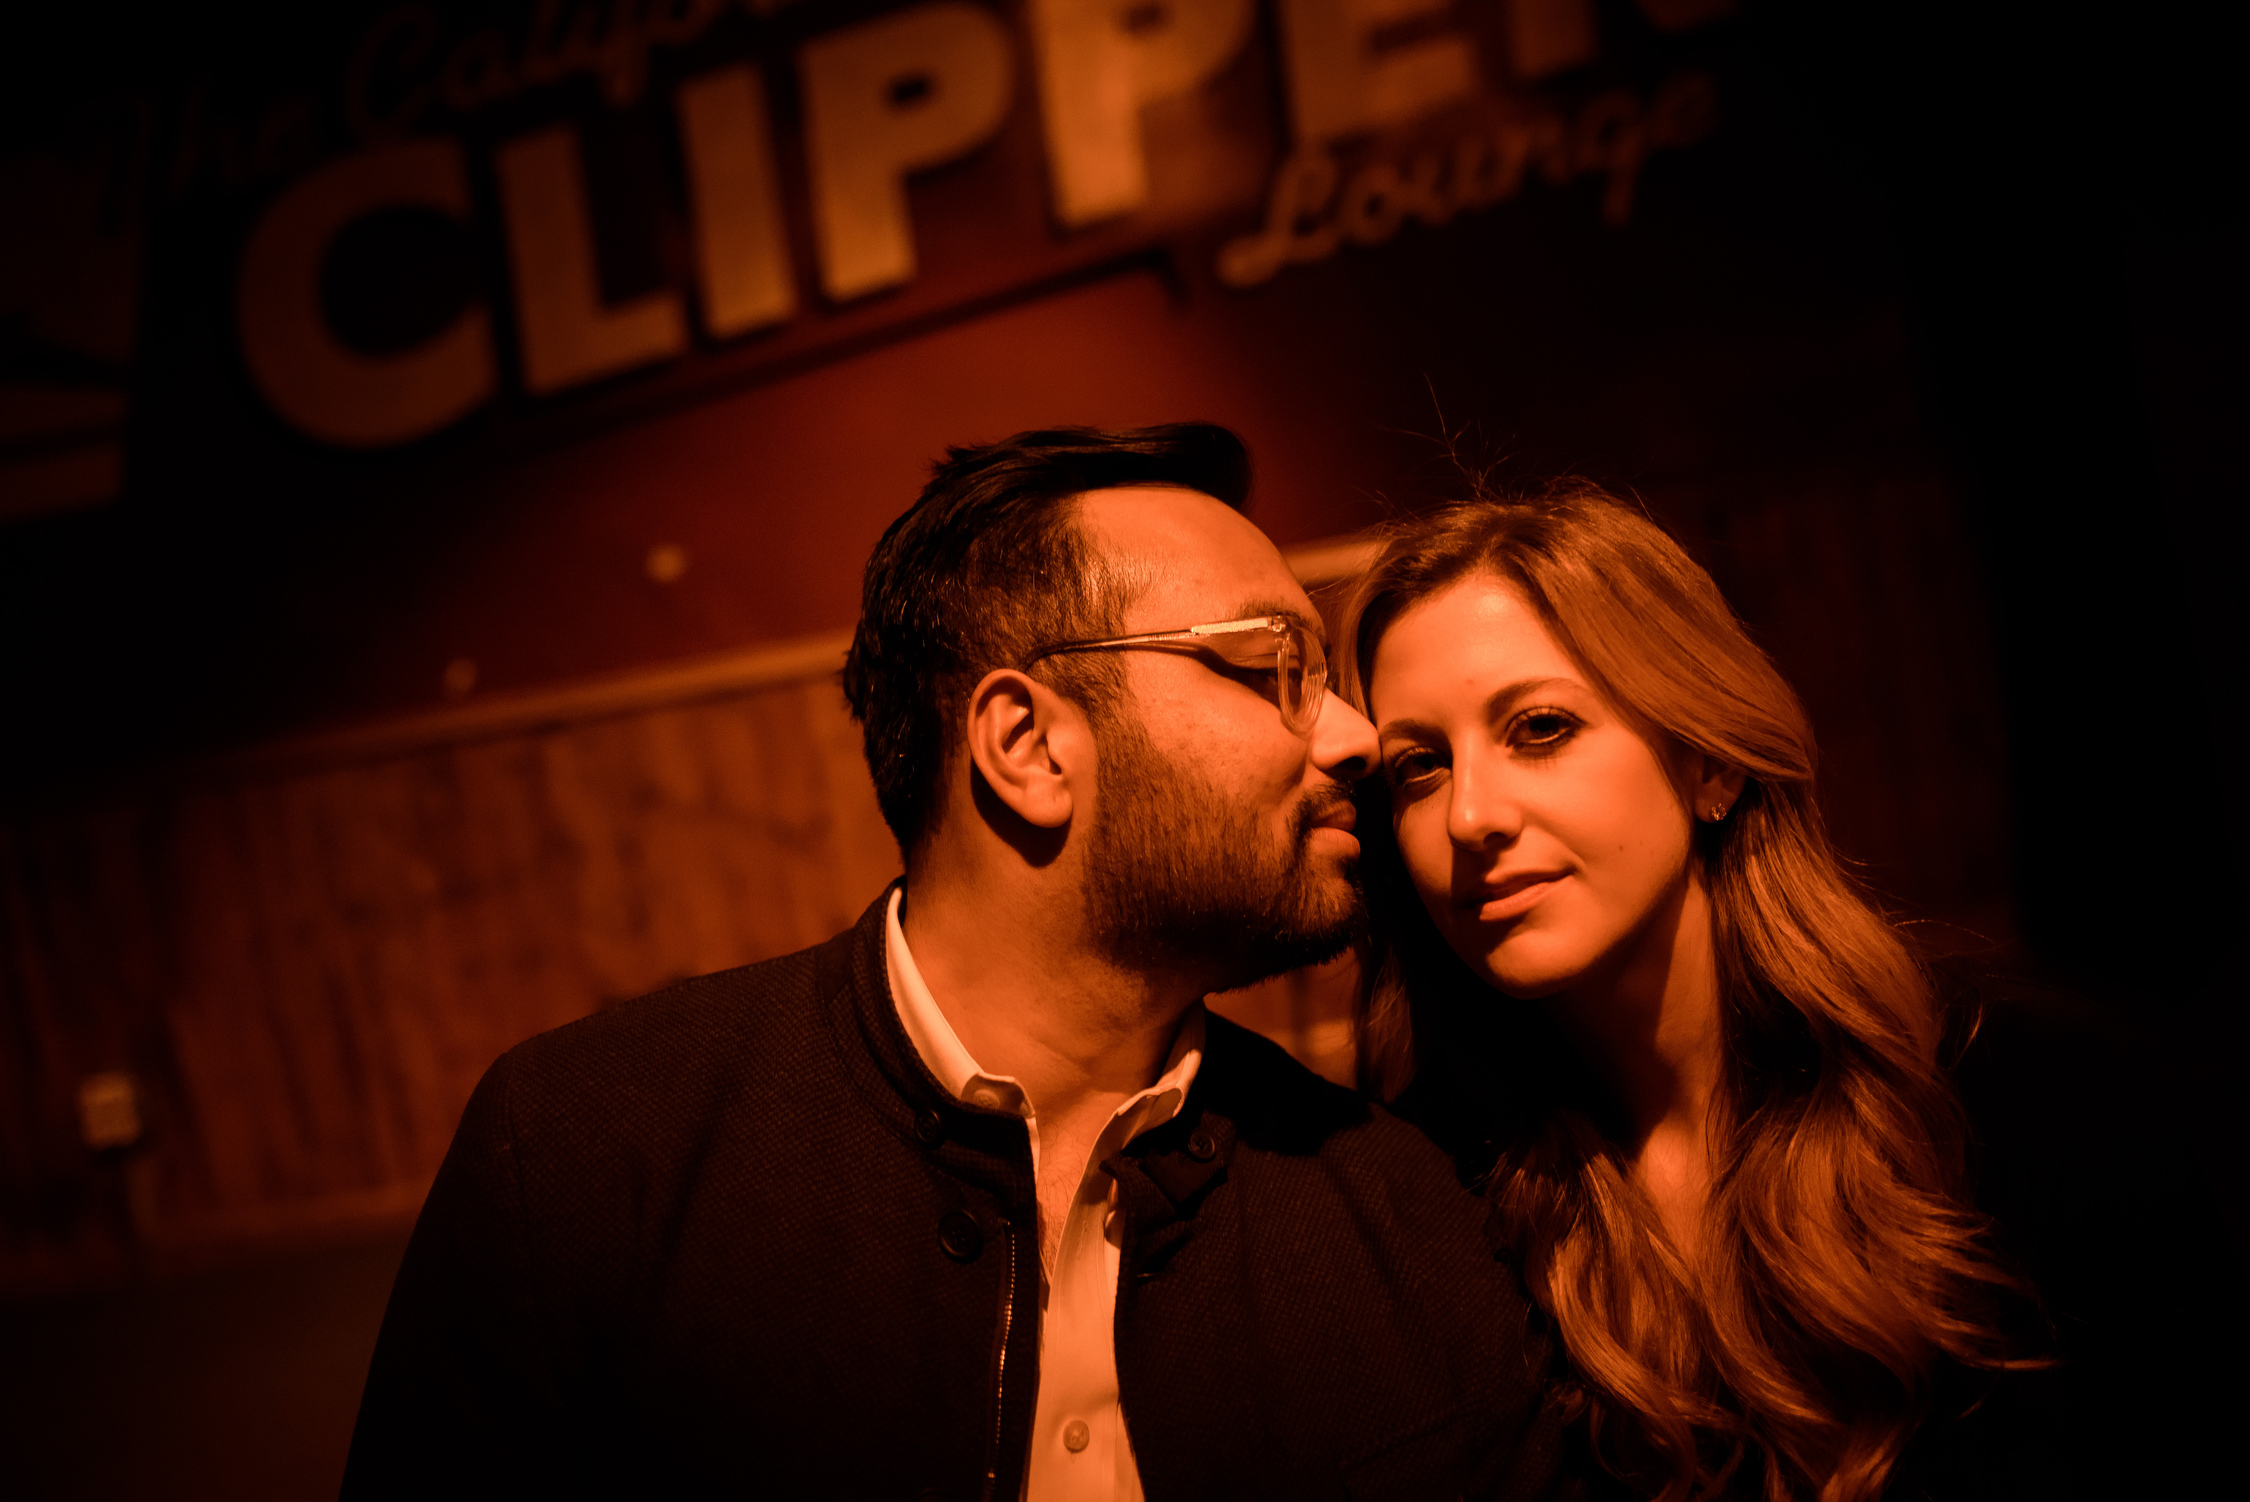 Engagement session at the California Clipper Lounge in Humboldt Park Chicago.